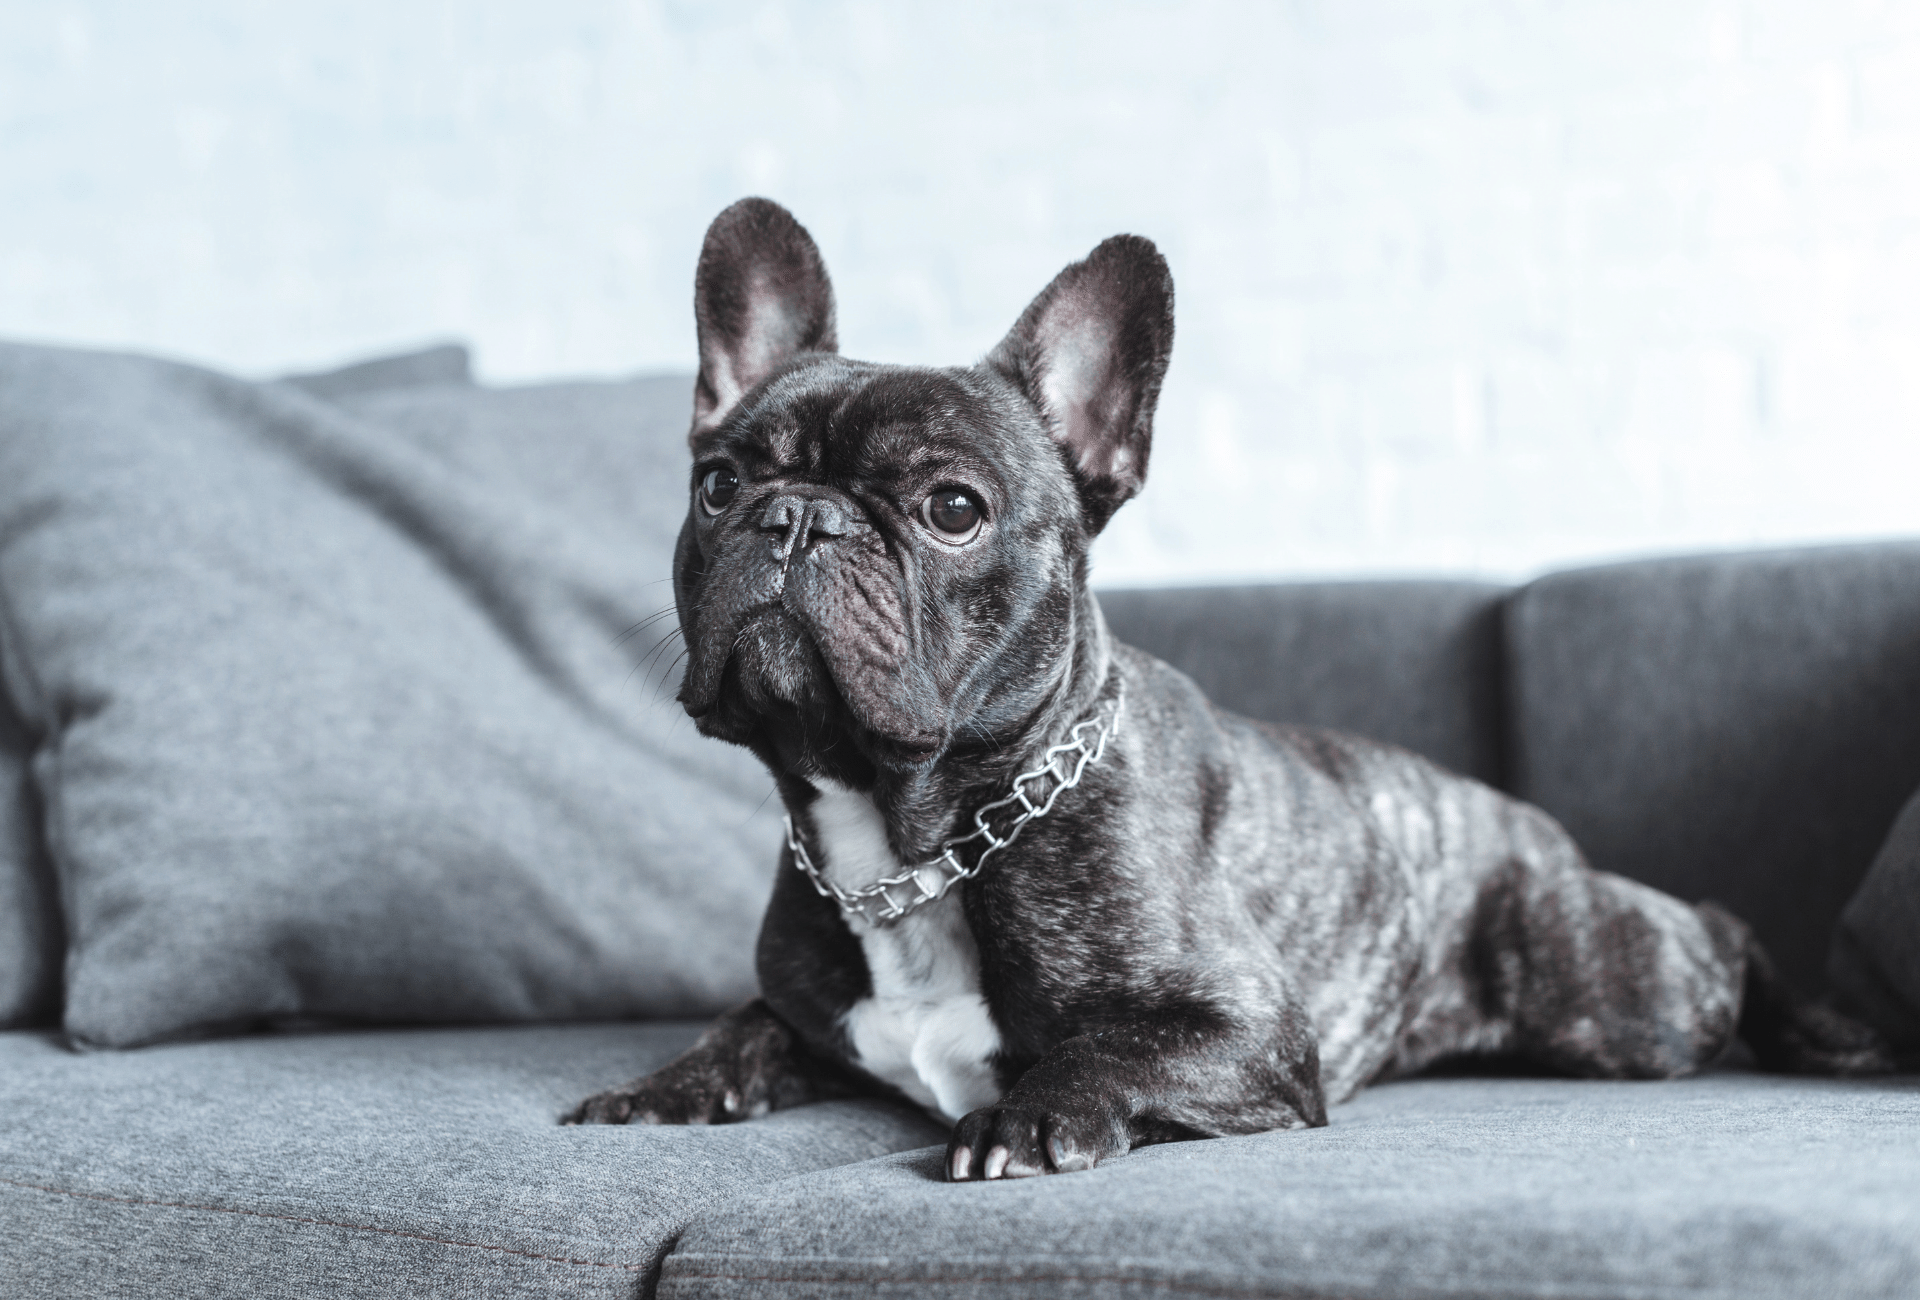 Black brindle French Bulldog on couch.